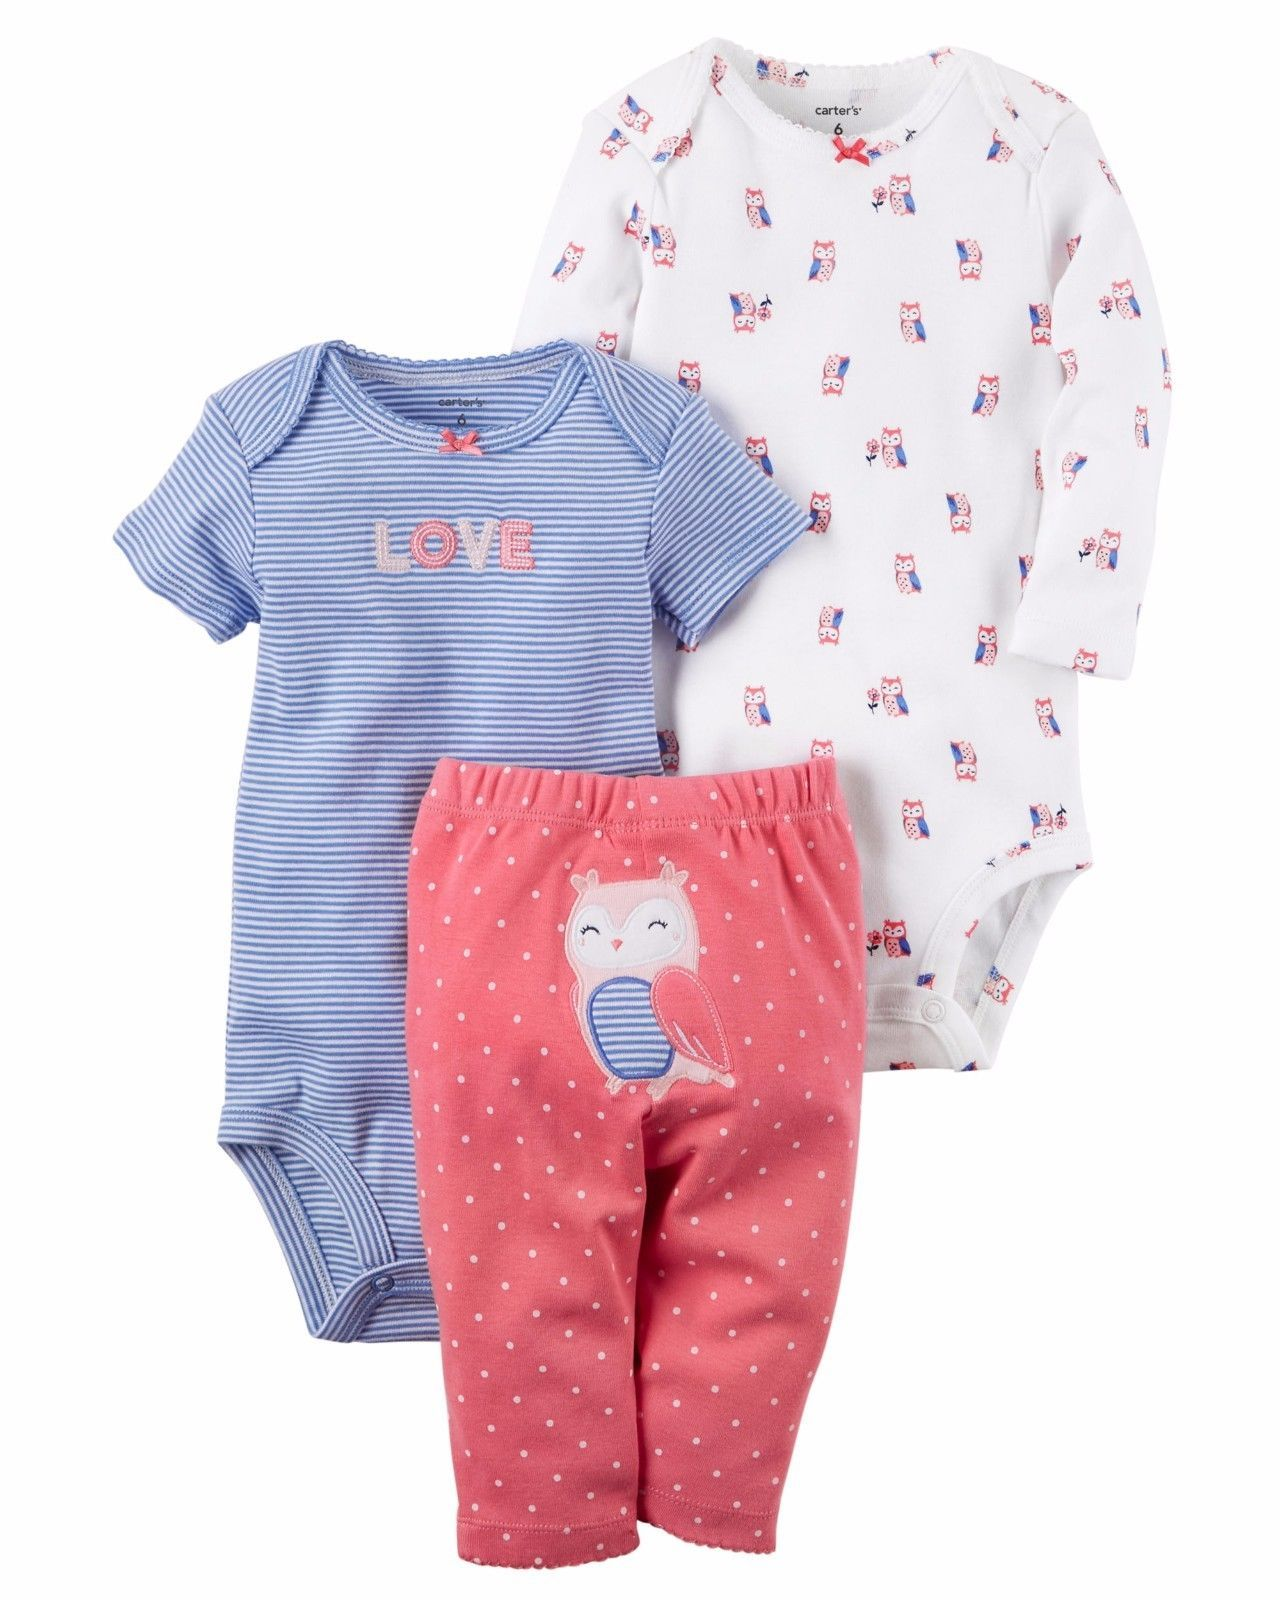 e5ec5e2d0 Other Baby and Toddler Clothing 1070: New Nwt Girls Carter S Preemie  Premature 3 Piece Owl Love Set -> BUY IT NOW ONLY: $14.99 on #eBay #other  #toddler ...